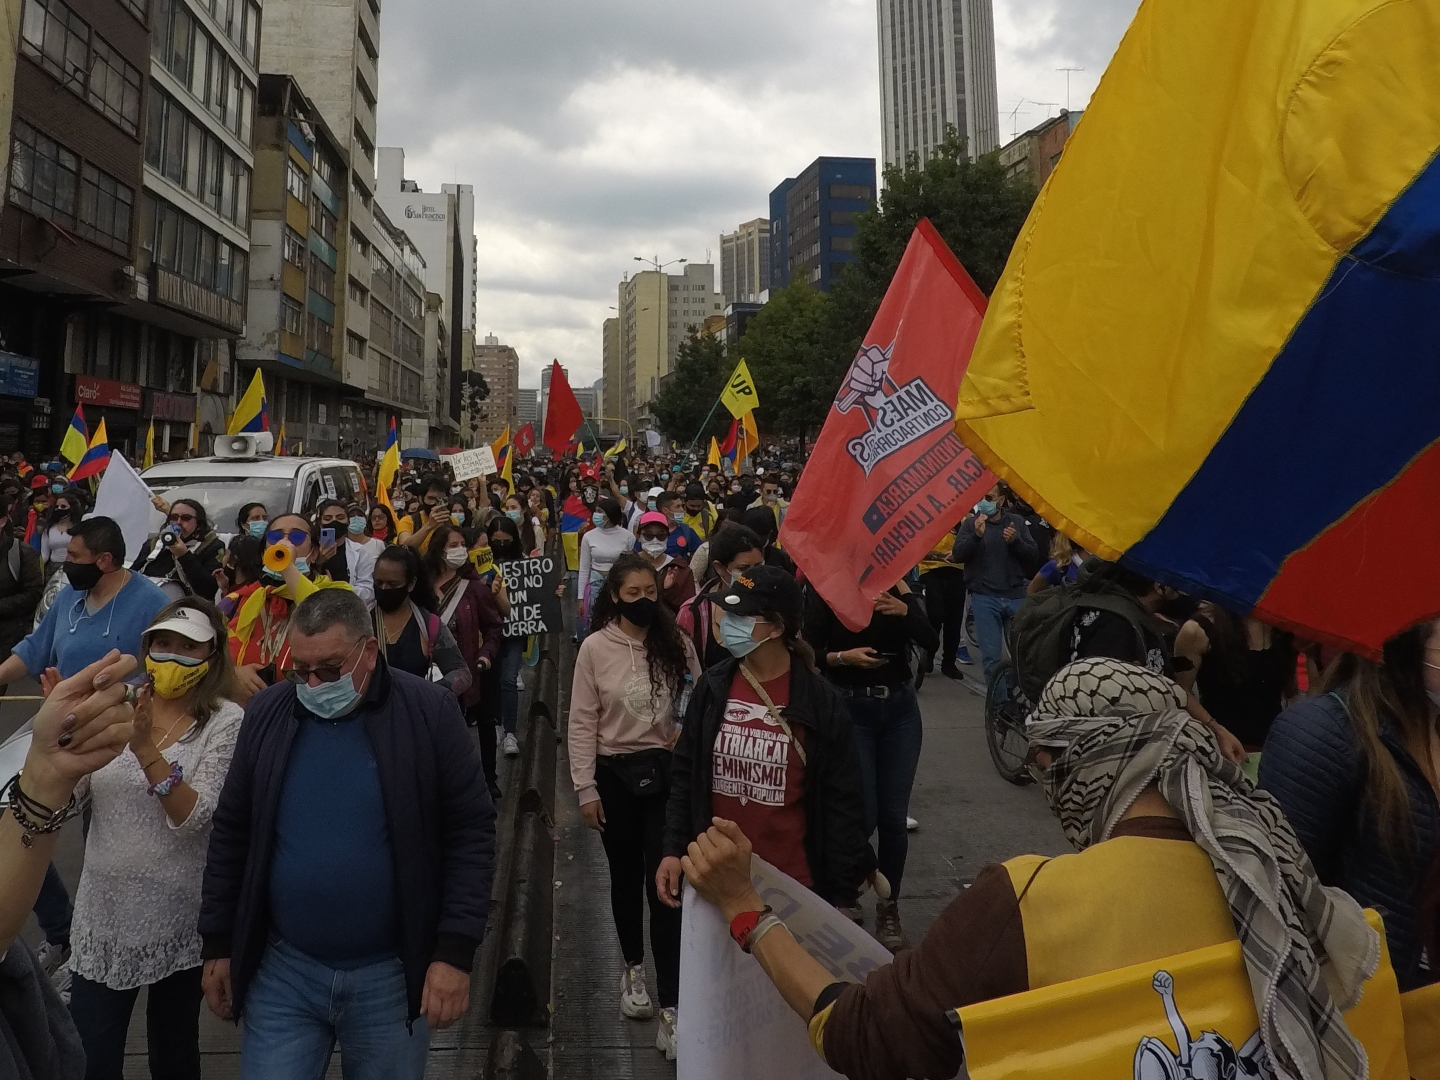 Protesters in the streets of Colombia